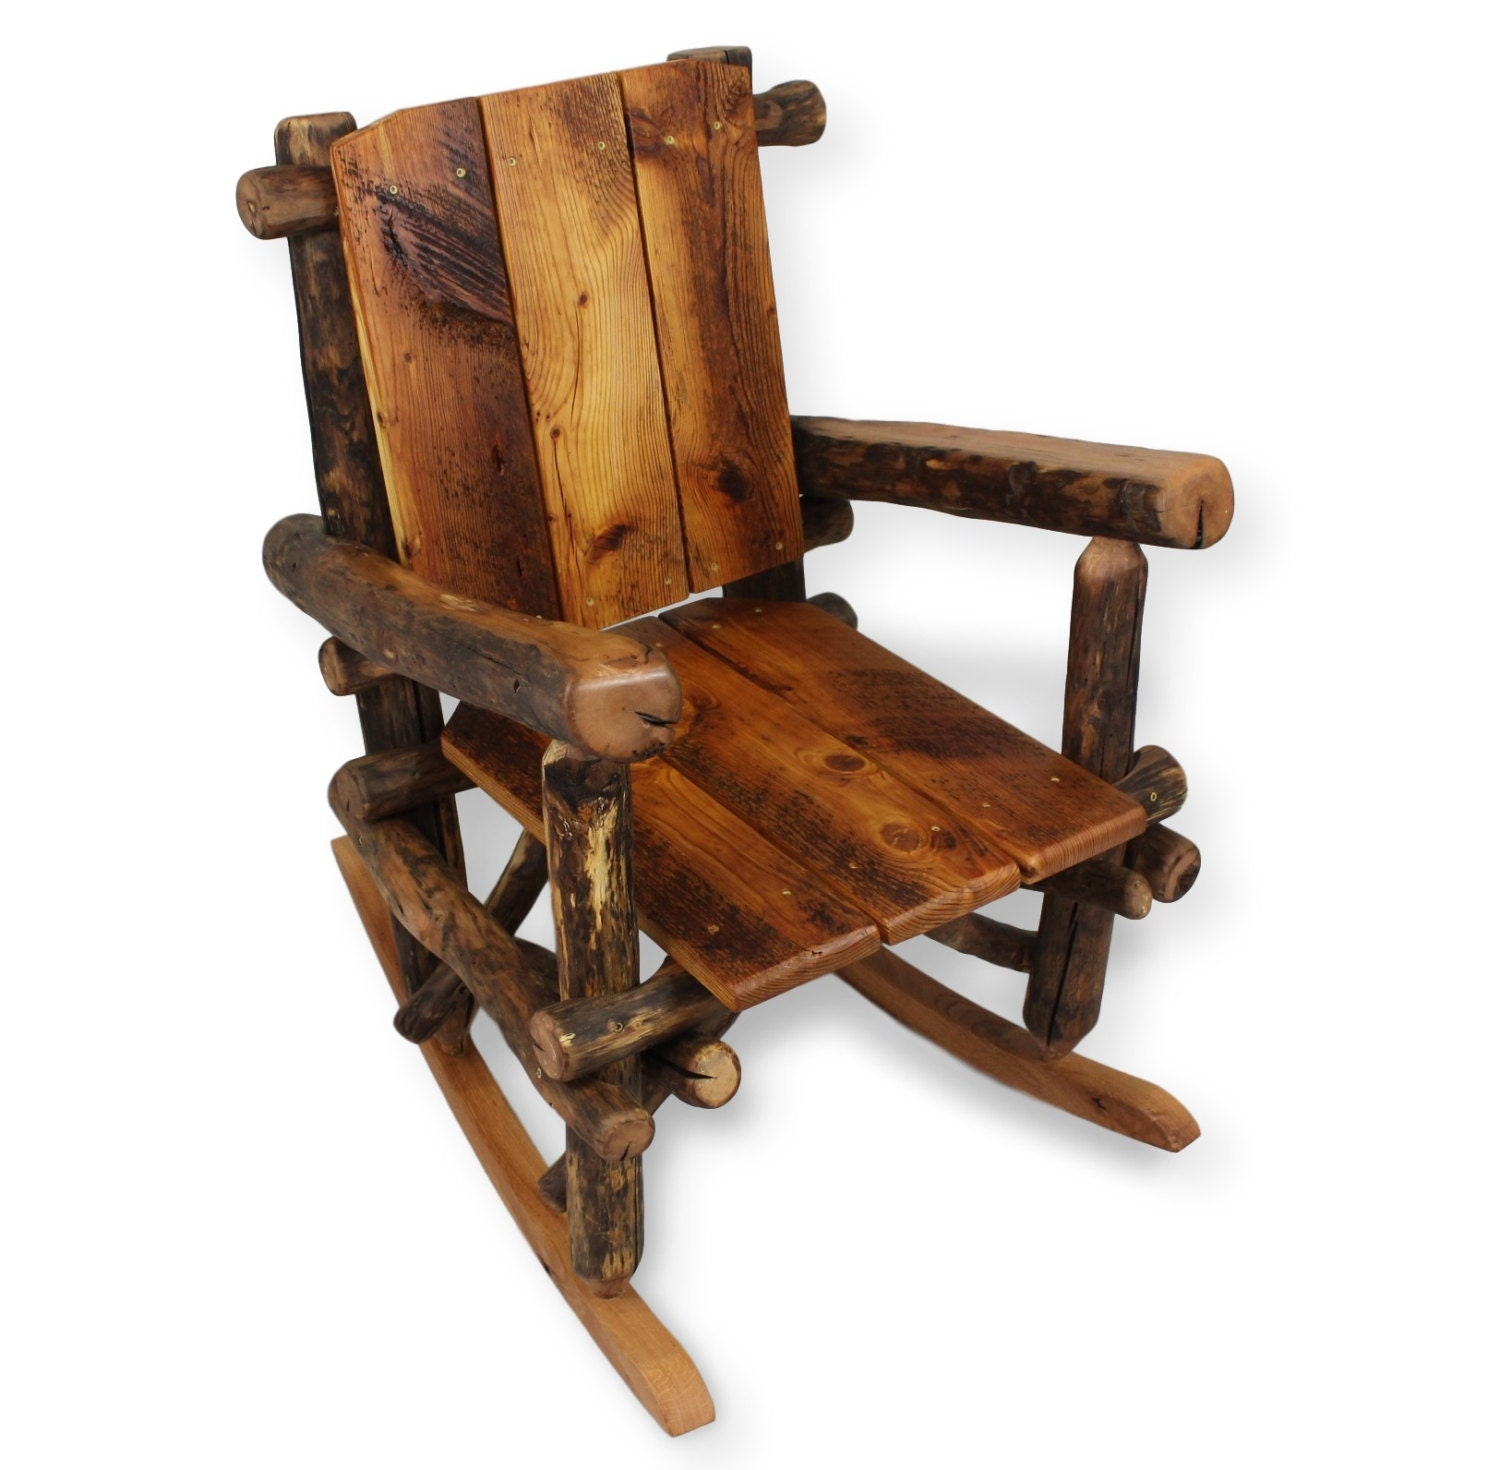 Rustic rocking chair reclaimed wood porch furniture